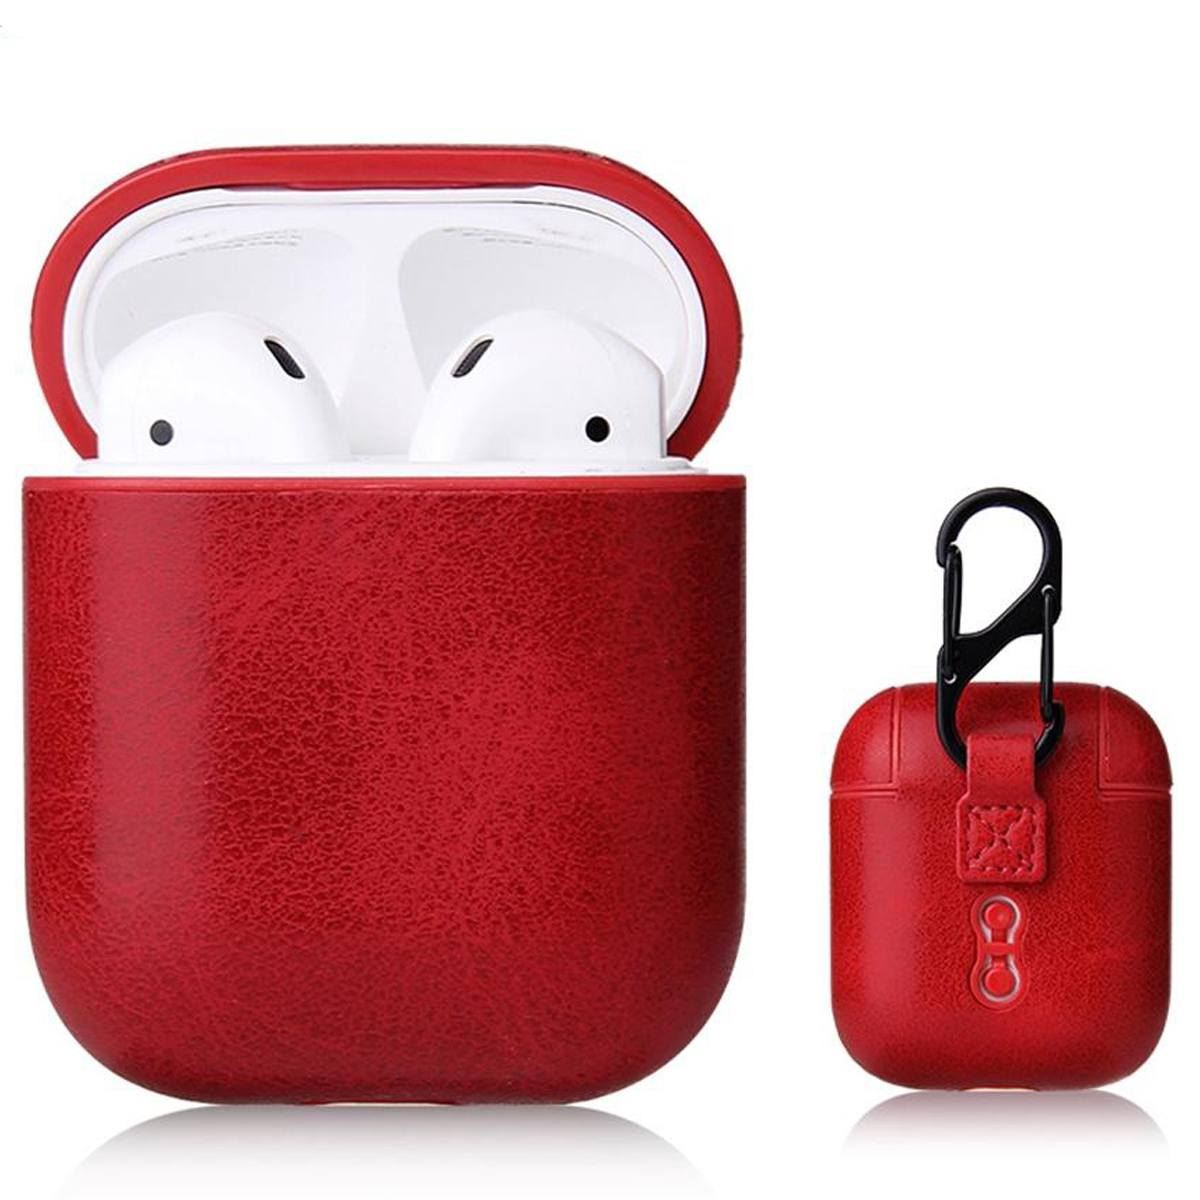 Case-For-Apple-Airpods-1-2-1st-2nd-Gen-Soft-Leather-Skin-Earphones-PU-Cover thumbnail 26